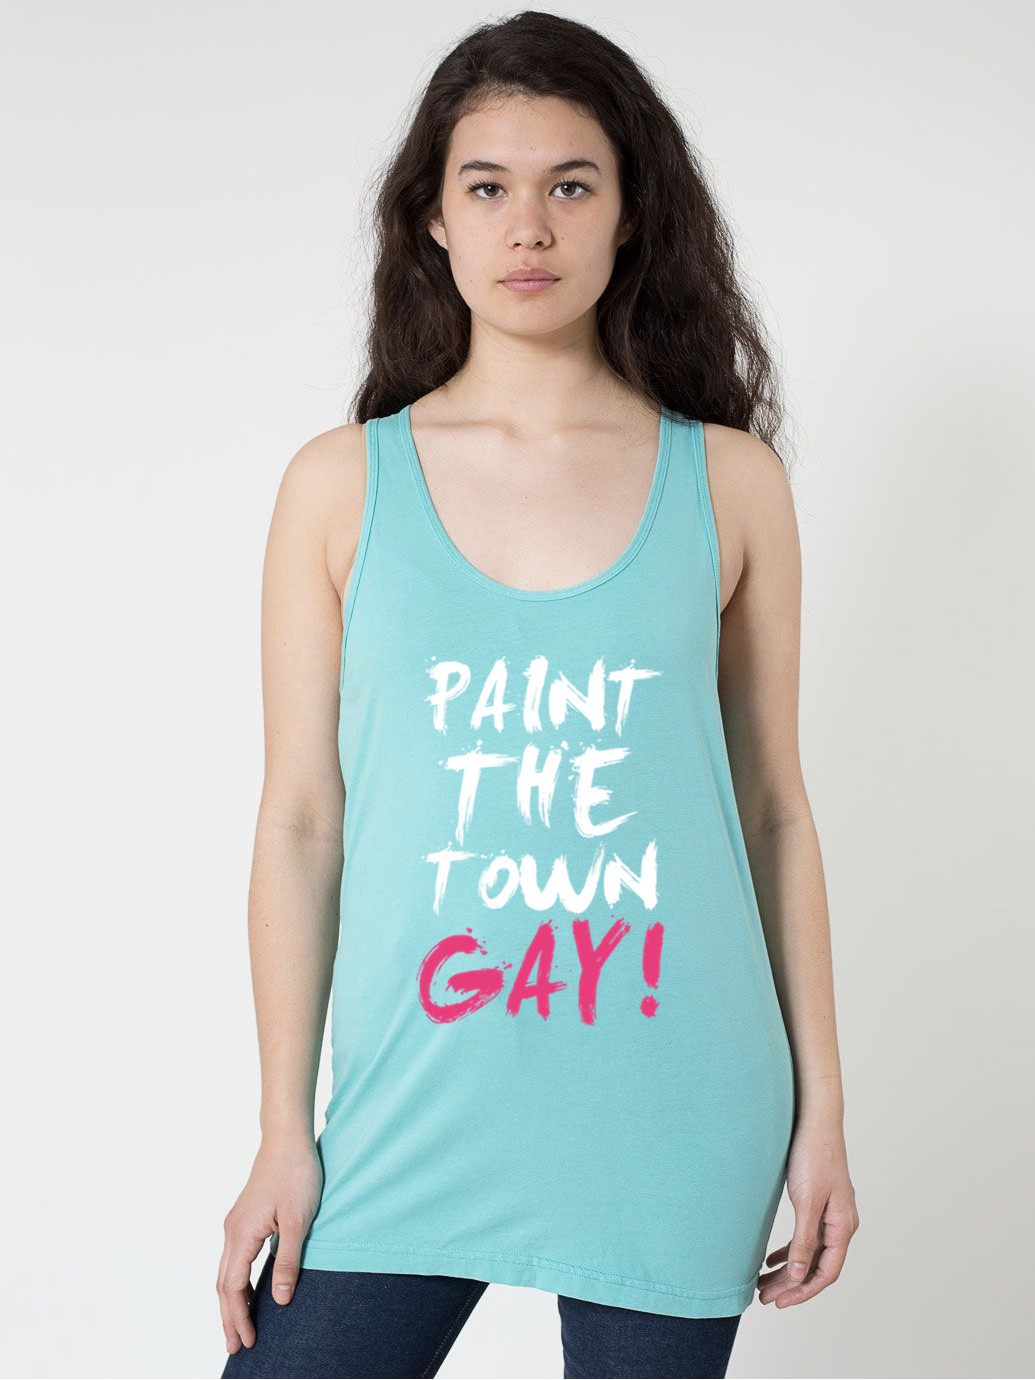 PAINT THE TOWN GAY! TANK - BOBO ACADEMY